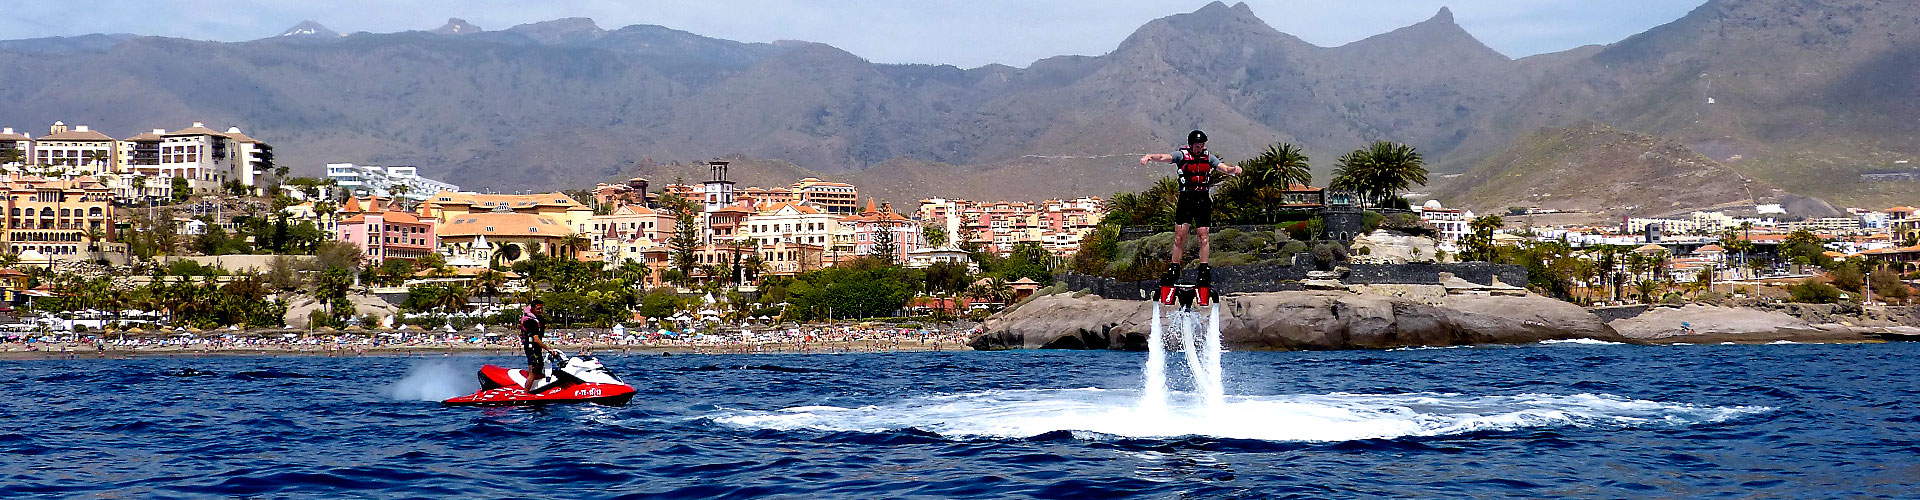 Watersporten in Tenerife